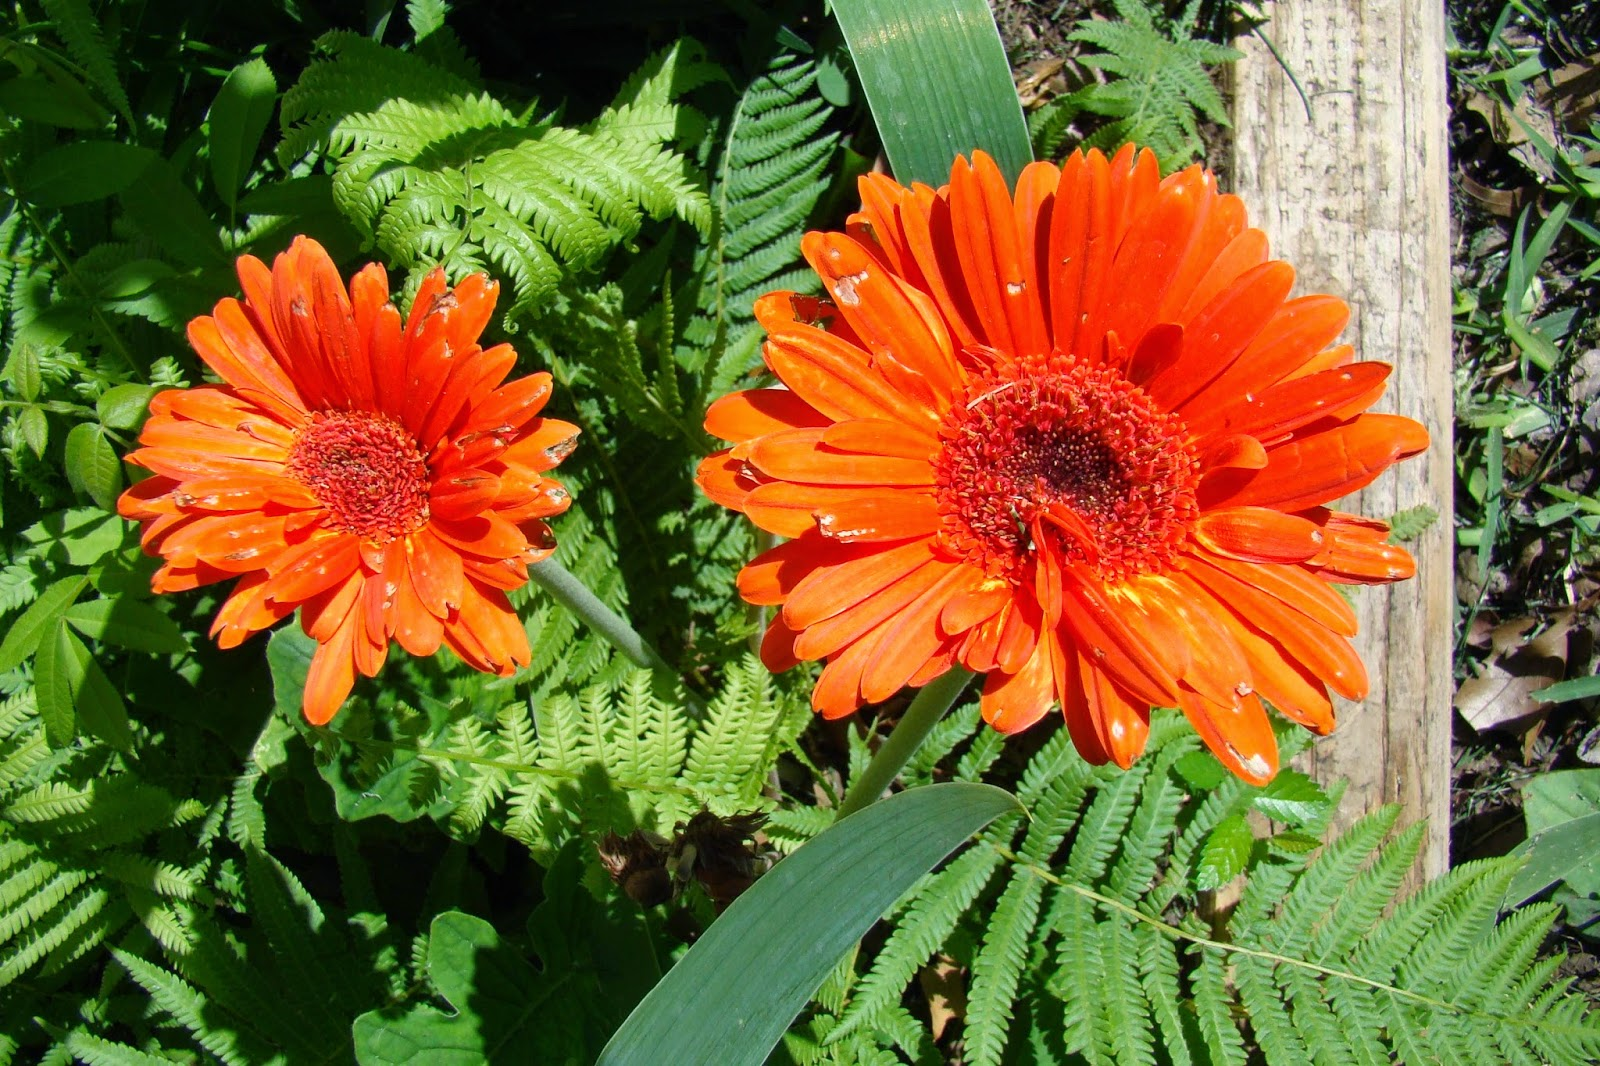 Orange gerbera daisies with imperfect petals